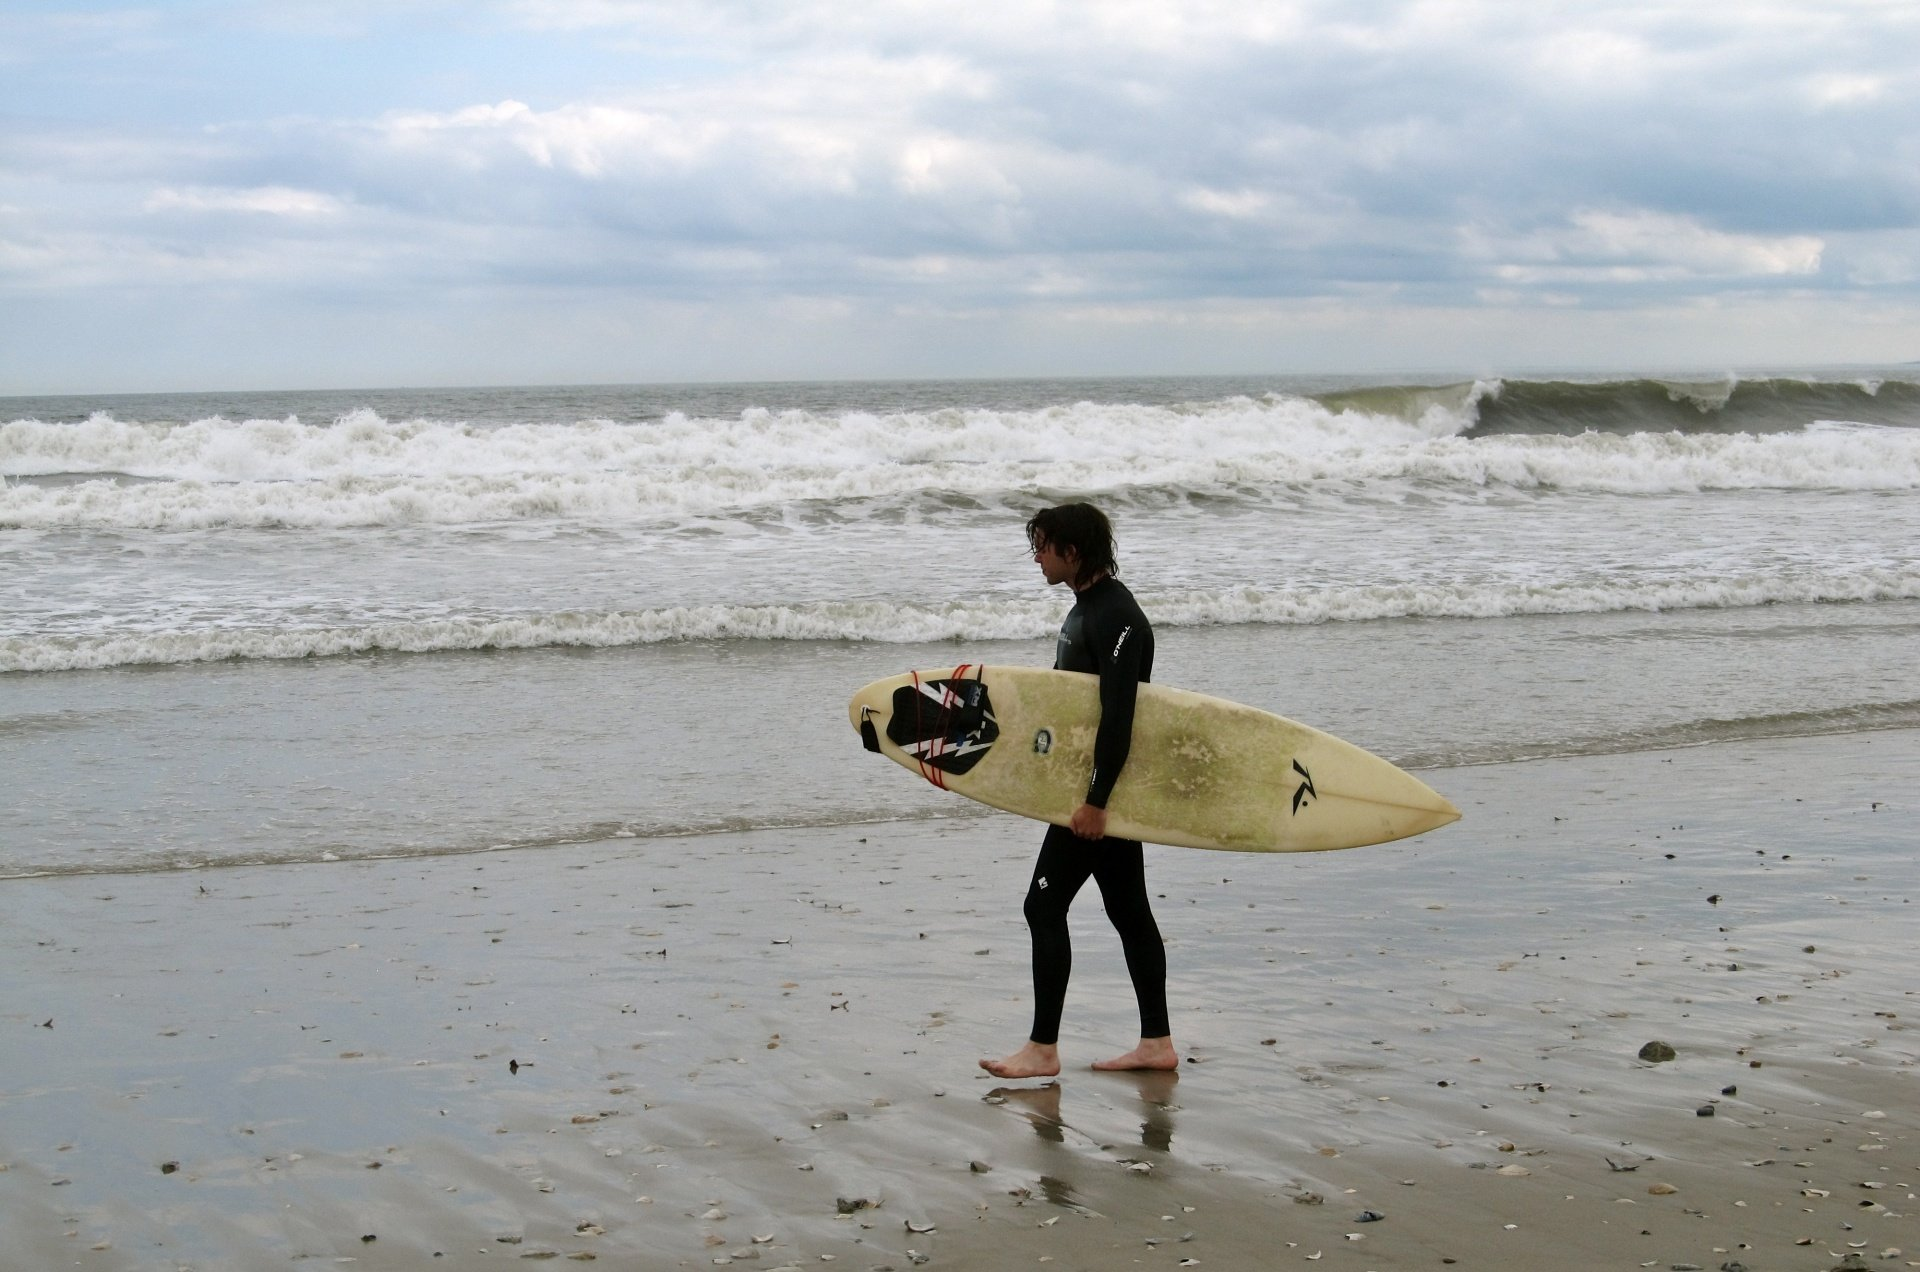 scr nyc's photo of Rockaway